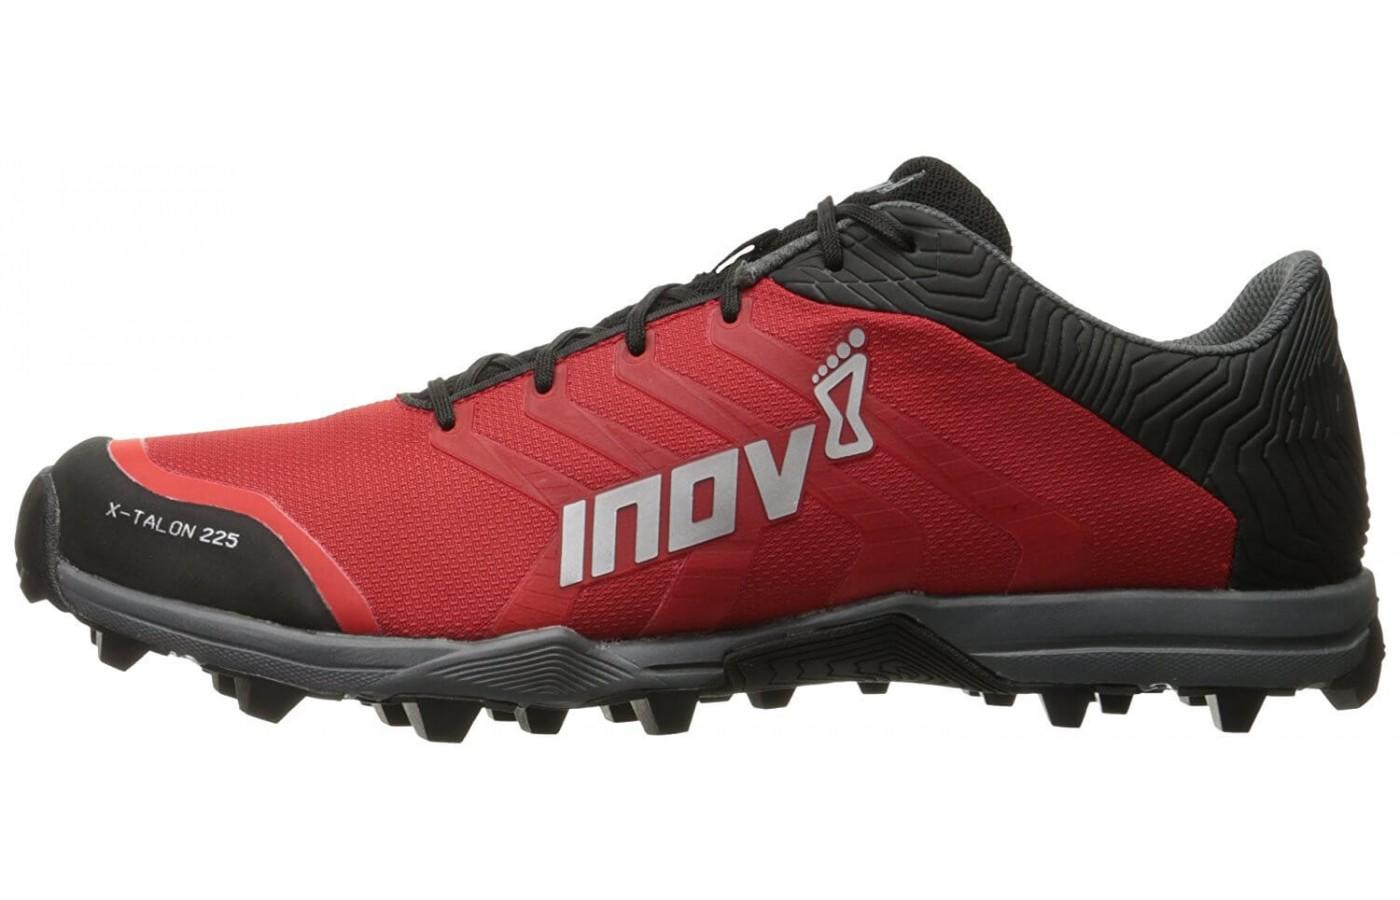 The Inov-8 X-Talon 225's 8mm lugs provide exceptional traction